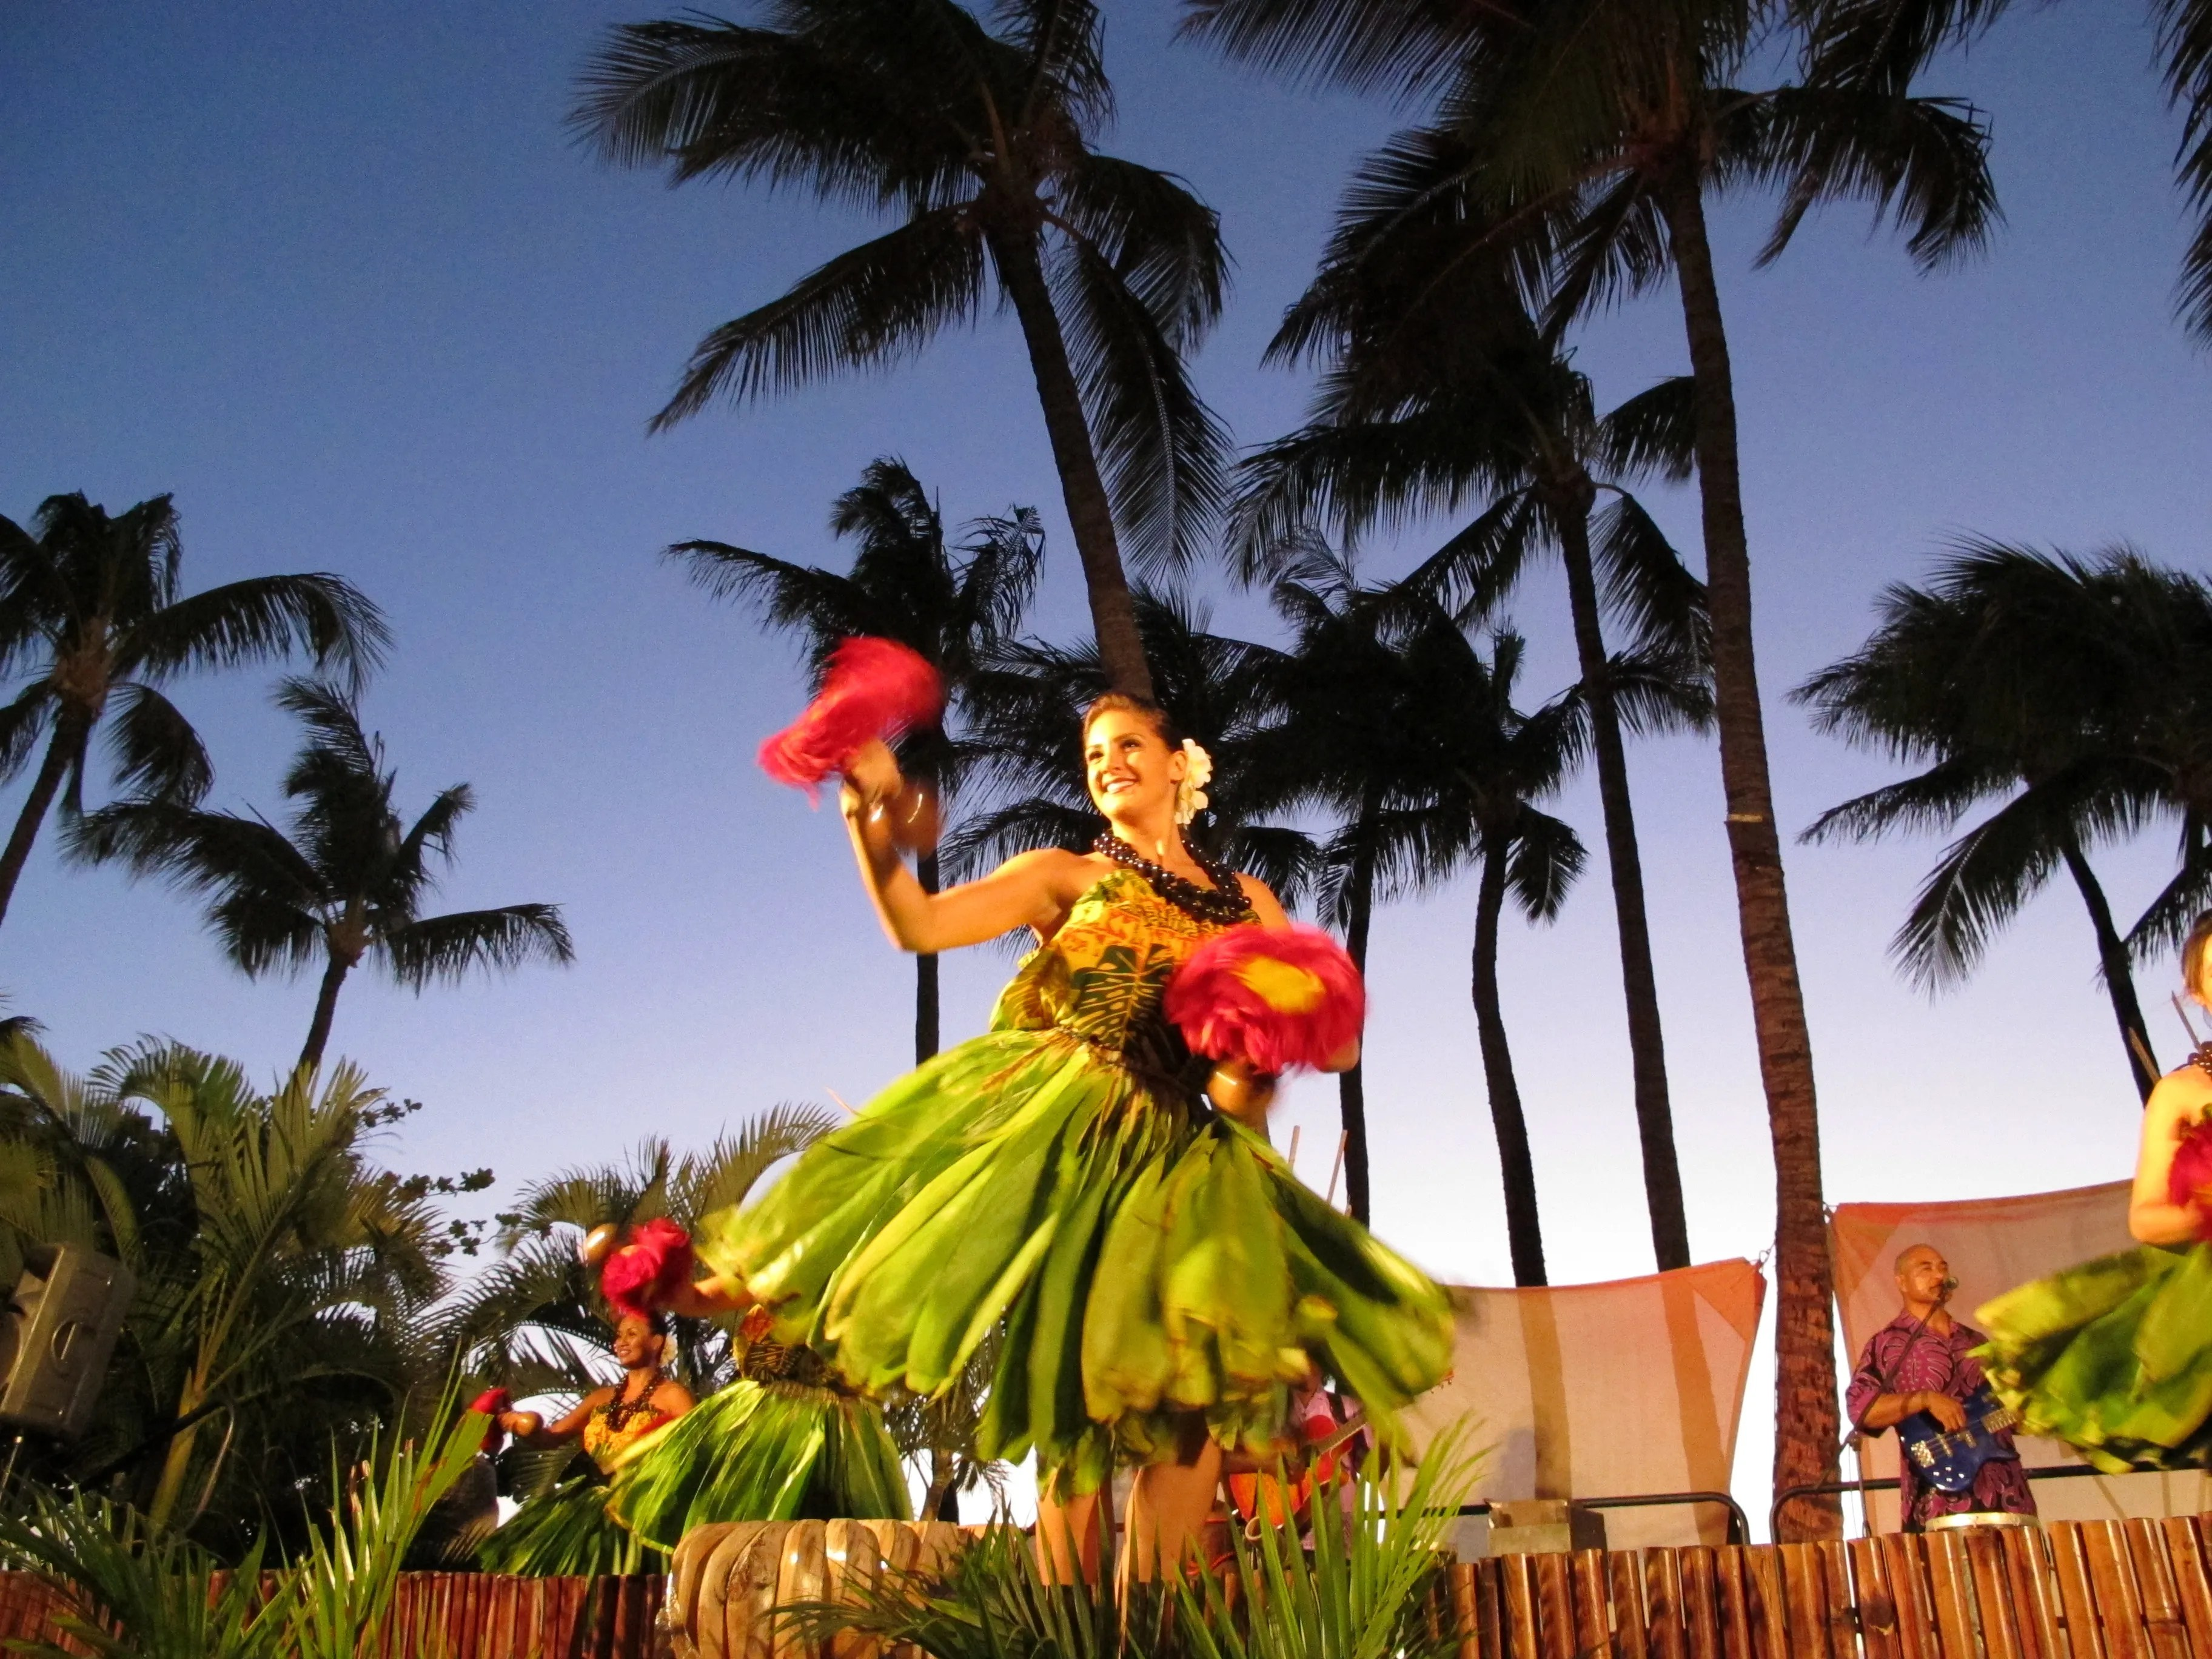 A Hawaiian luau at the Westin Maui on Kaanapali Beach is a great way to spend the evening. It's an outstanding resort with family-friendly pools and waterslides.